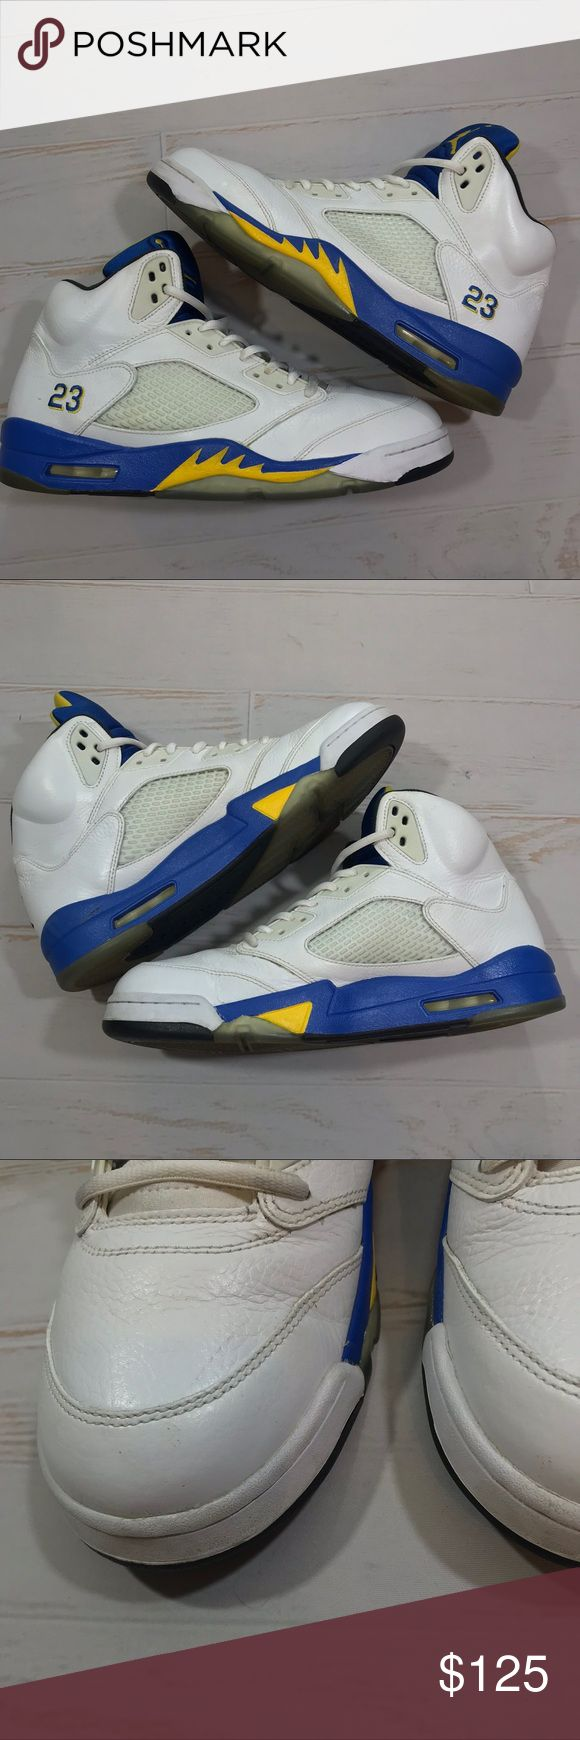 Nike Air Jordan Retro 5 V Laney 2013  Sneaker Nike Air Jordan Retro 5 V Laney Blue Yellow 2013 Basketball Sneaker  Size 12  Worn less then 10 times good condition just has creasing and a few minor scuffs through out all shown in pics! No box or lace locks! If you have any questions please message me thanks! Check out my other listings! Air Jordan Shoes Sneakers